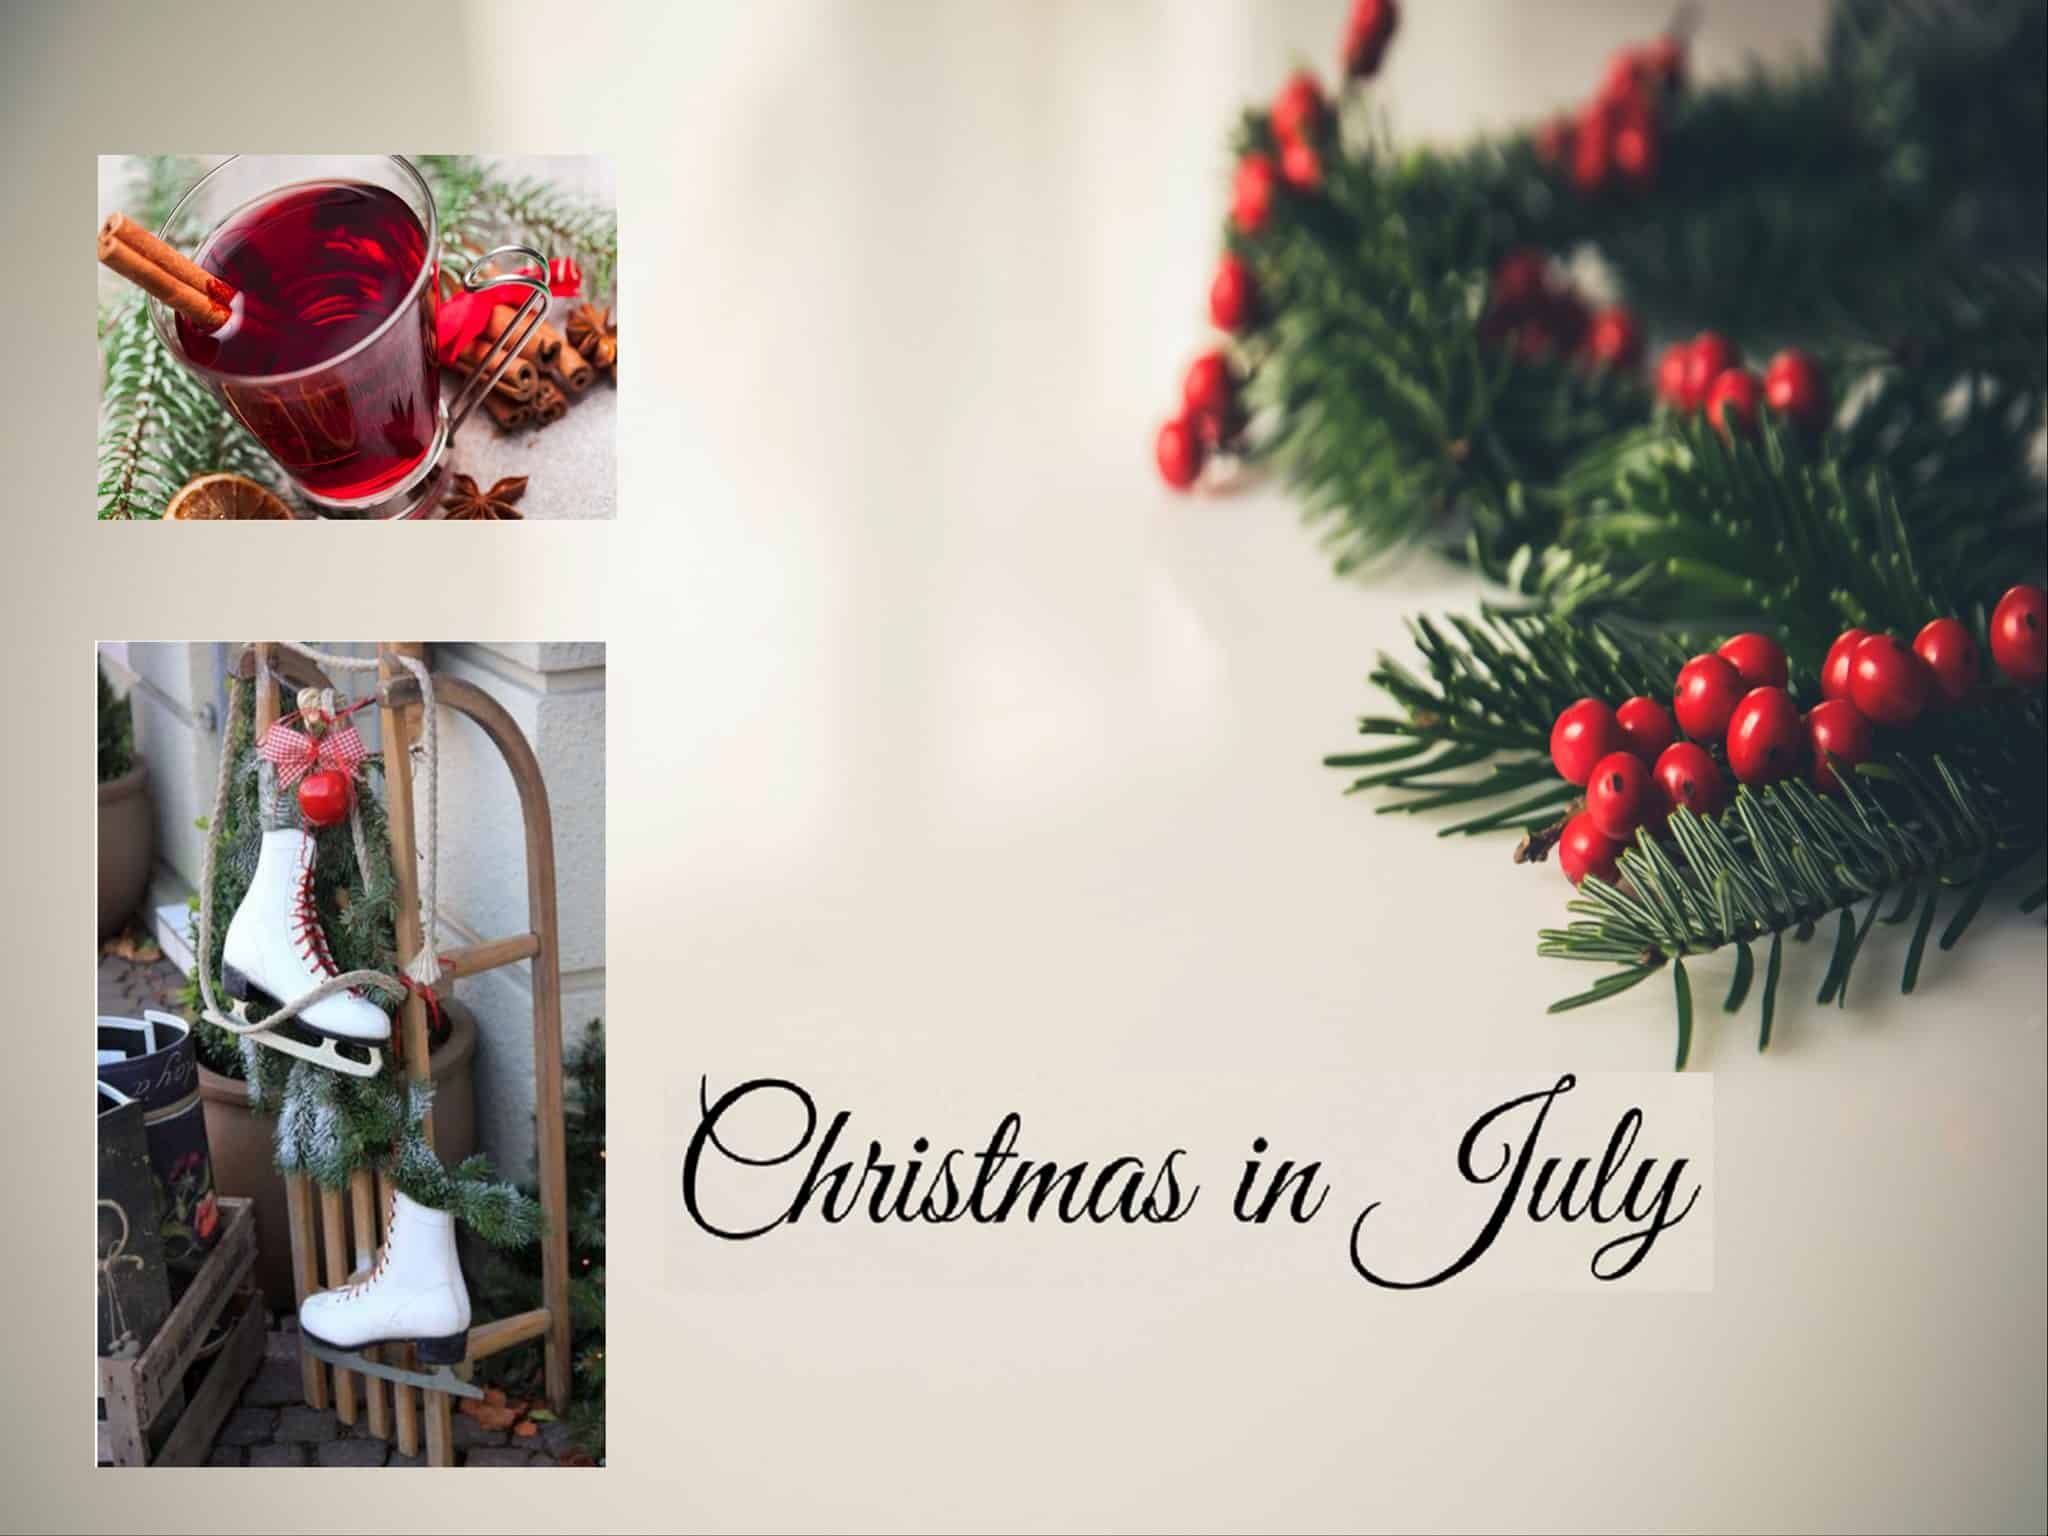 Christmas in July at Ice Zoo